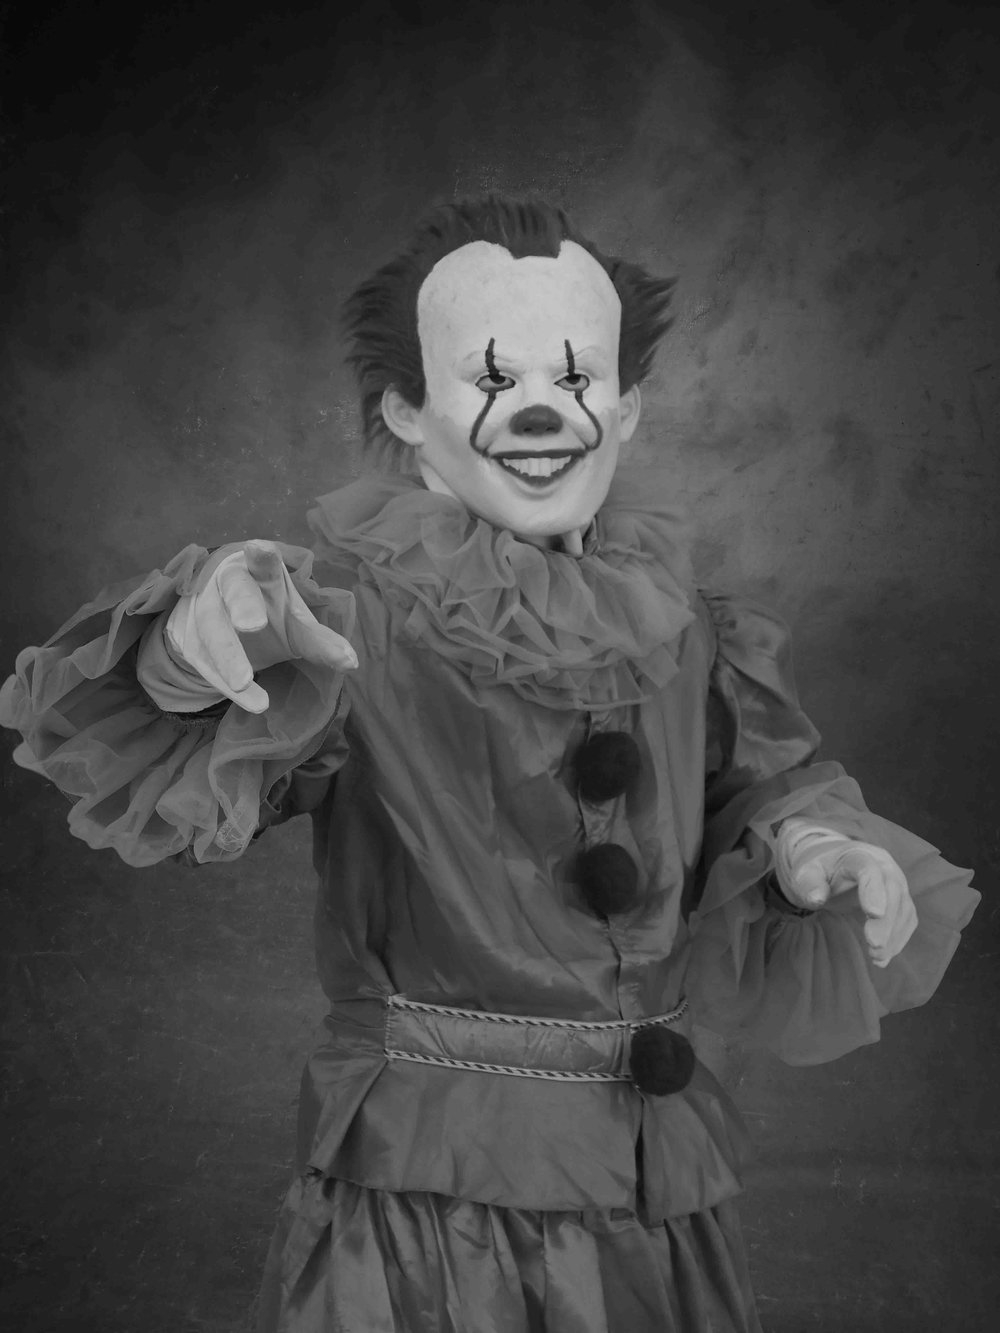 Pennywise - Inspired by the Stephen King Book